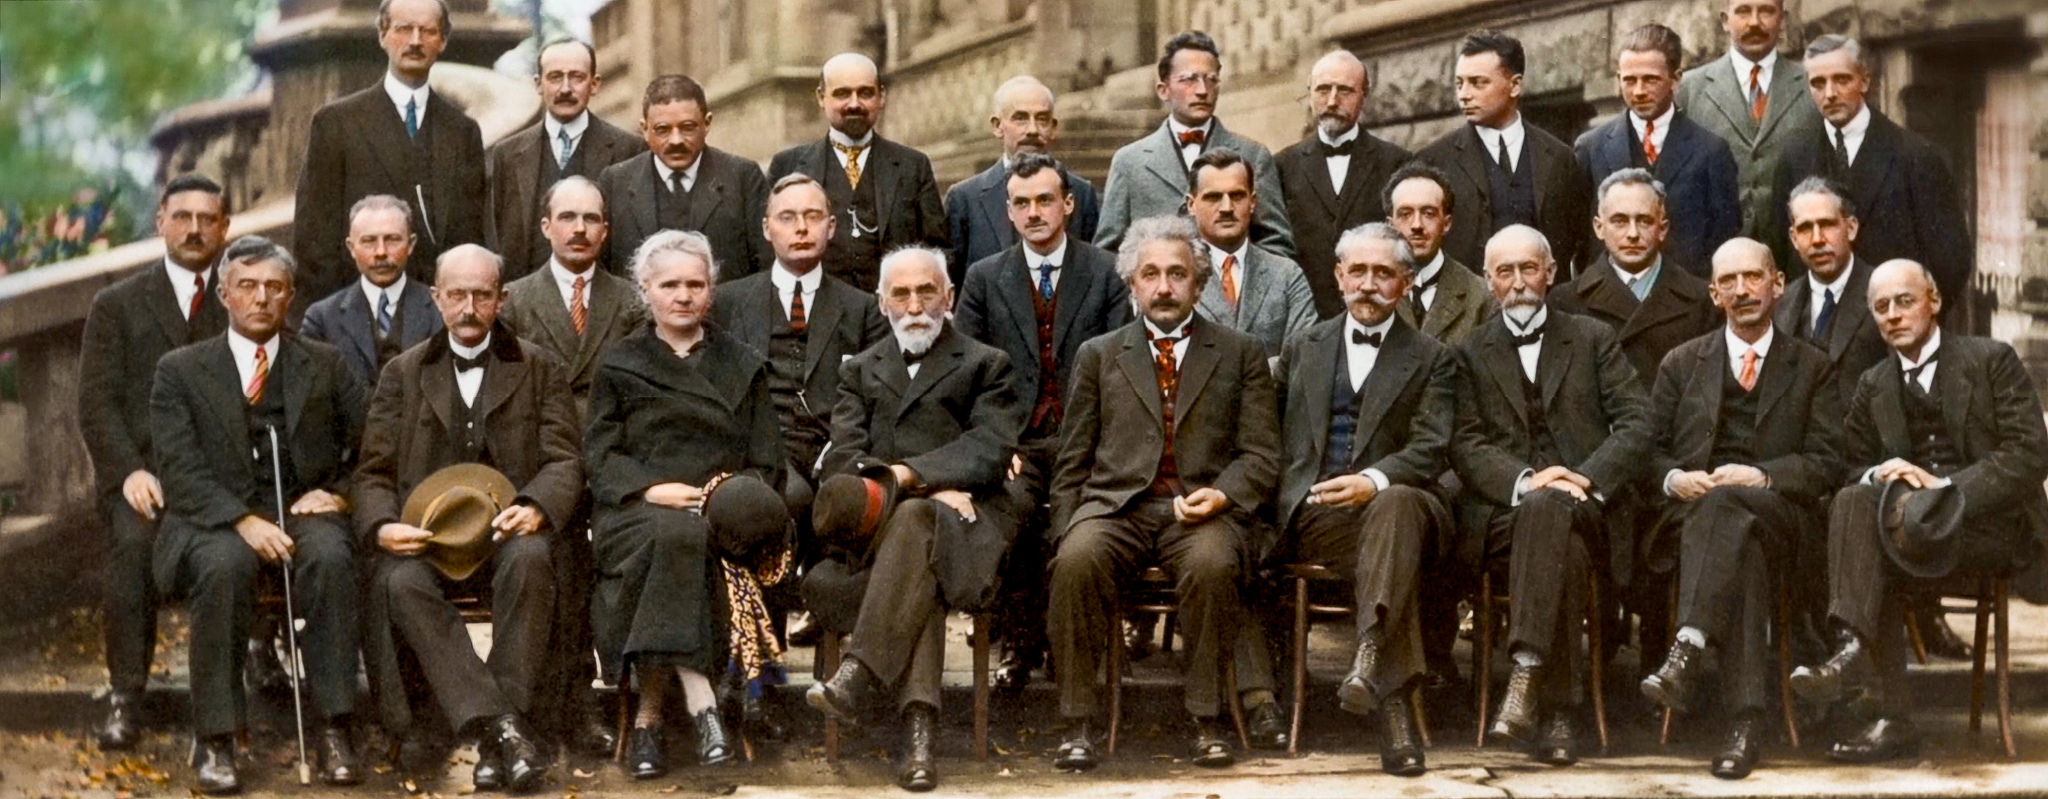 Fifth Solvay Conference On Physics 1927 Color Photo